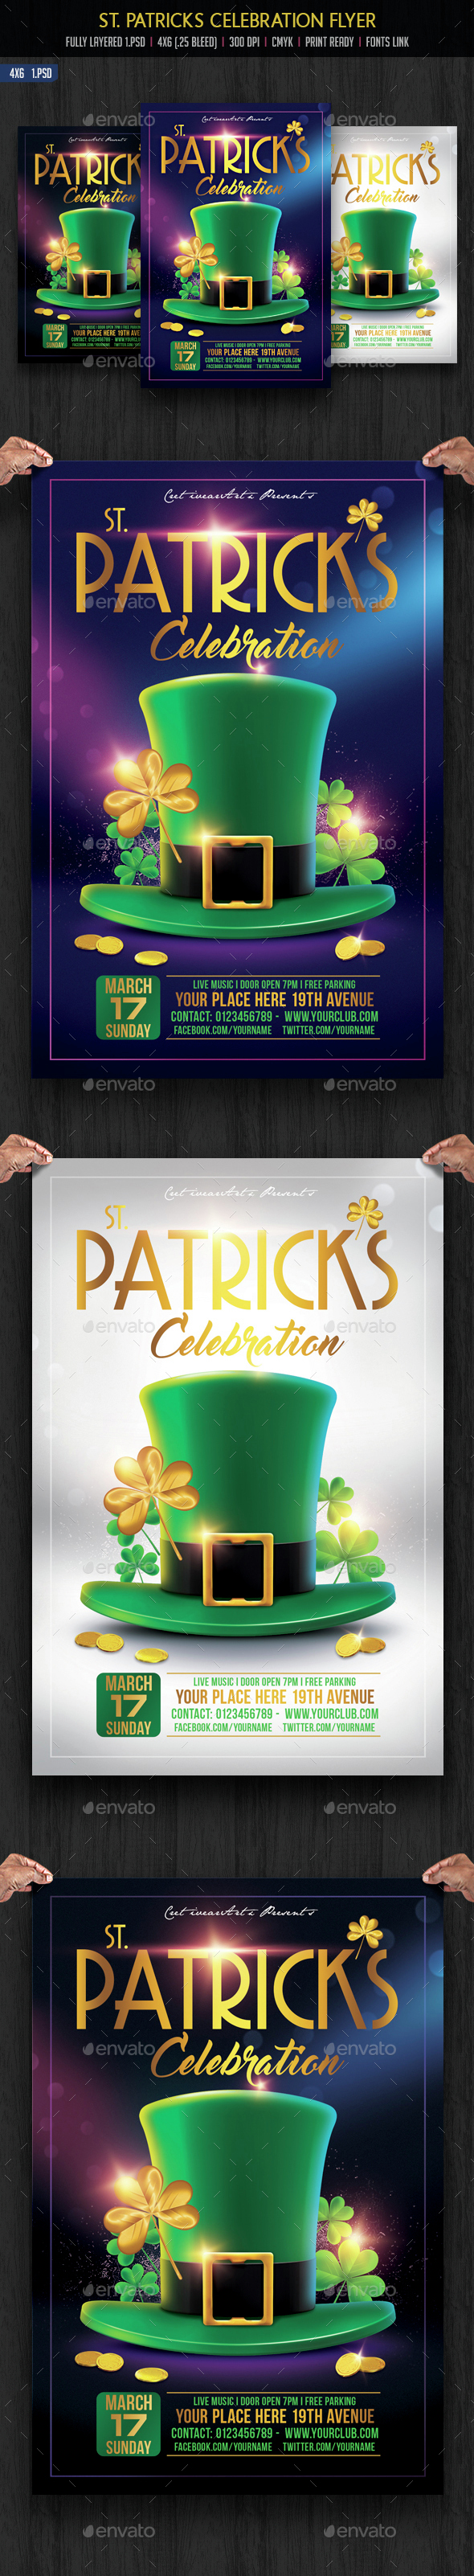 St. Patricks Celebration Flyer - Events Flyers